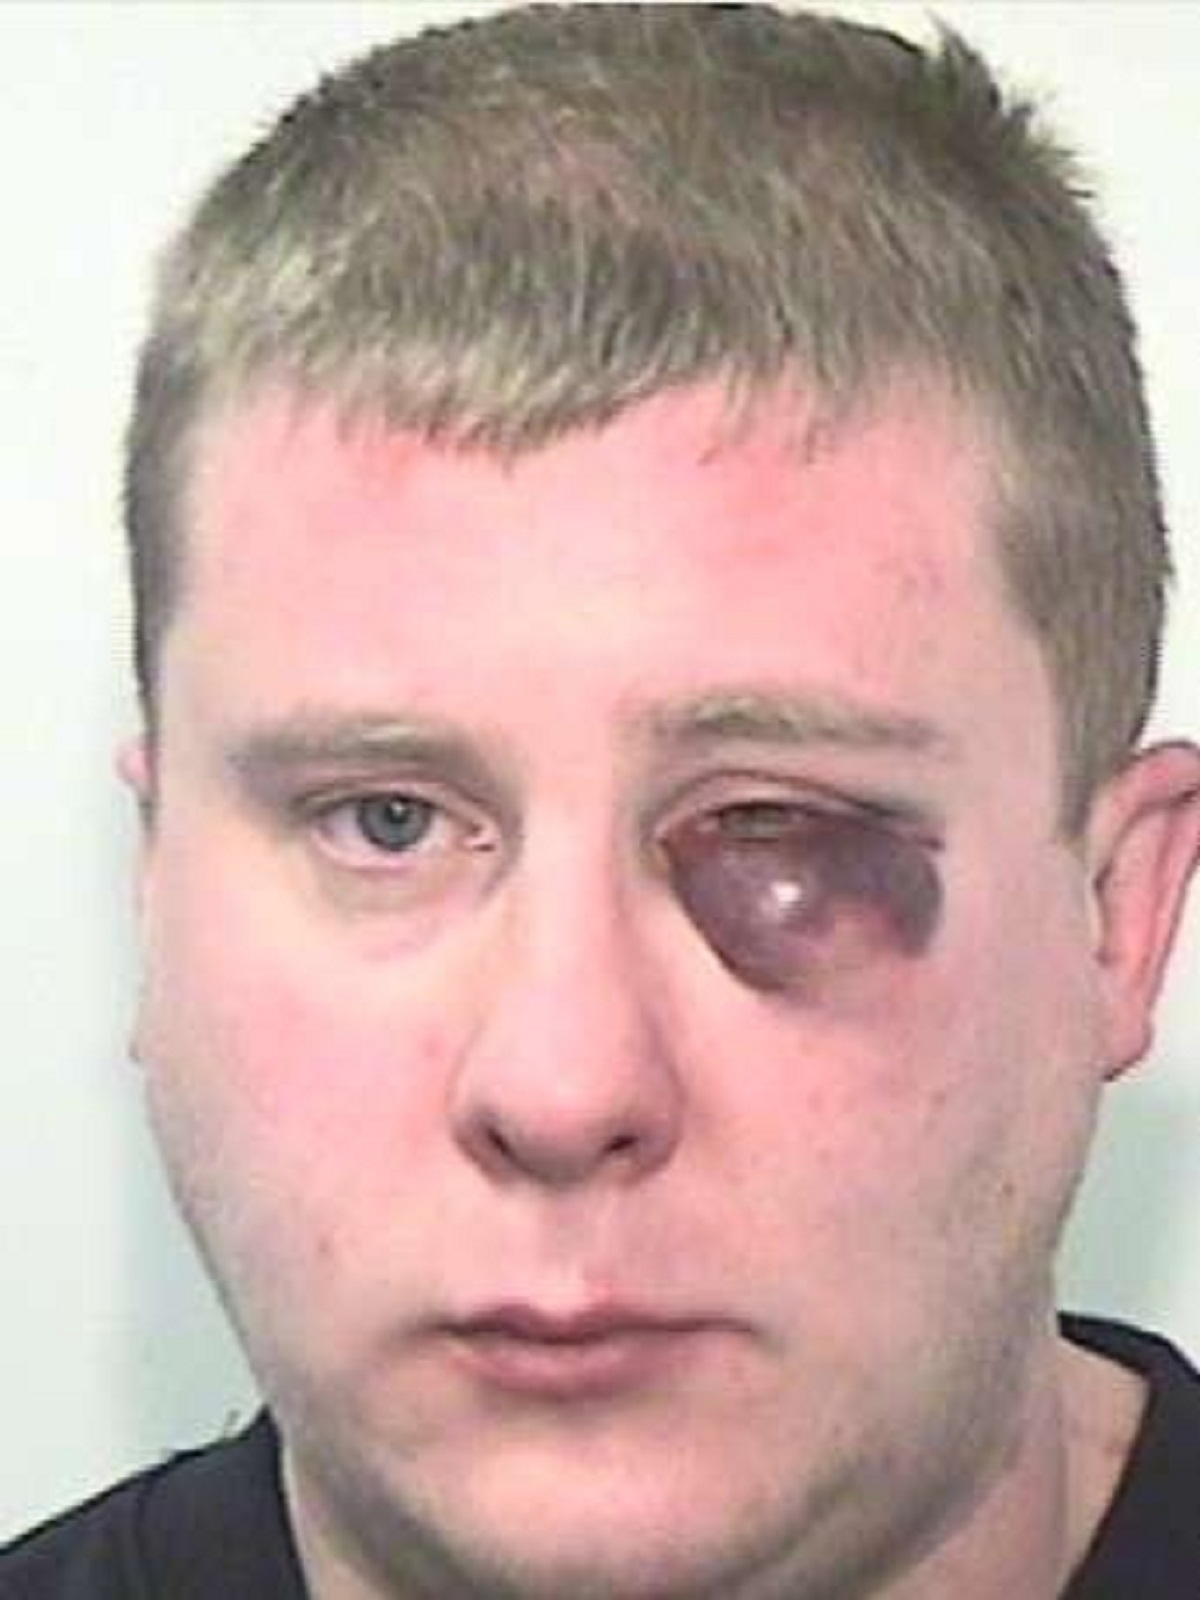 Man jailed for attempting to rape stranger after offering to help her